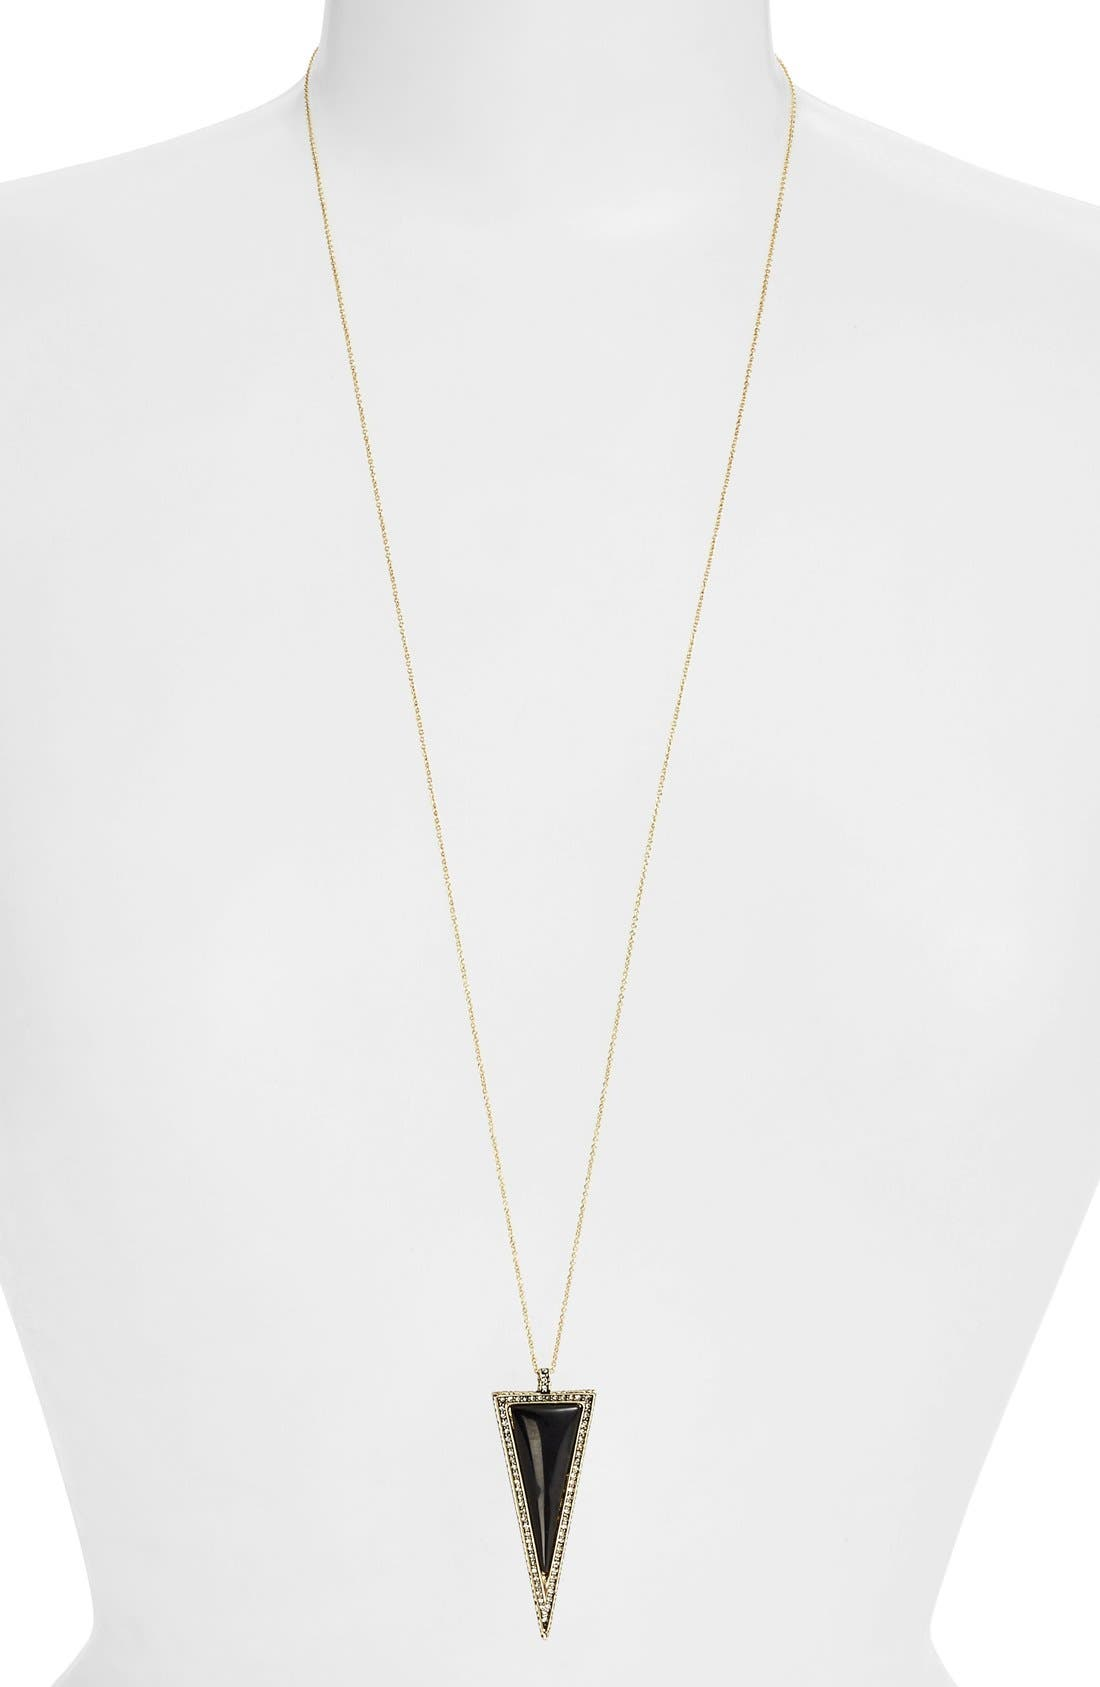 Main Image - House of Harlow 1960 'Delta' Triangle Pendant Necklace